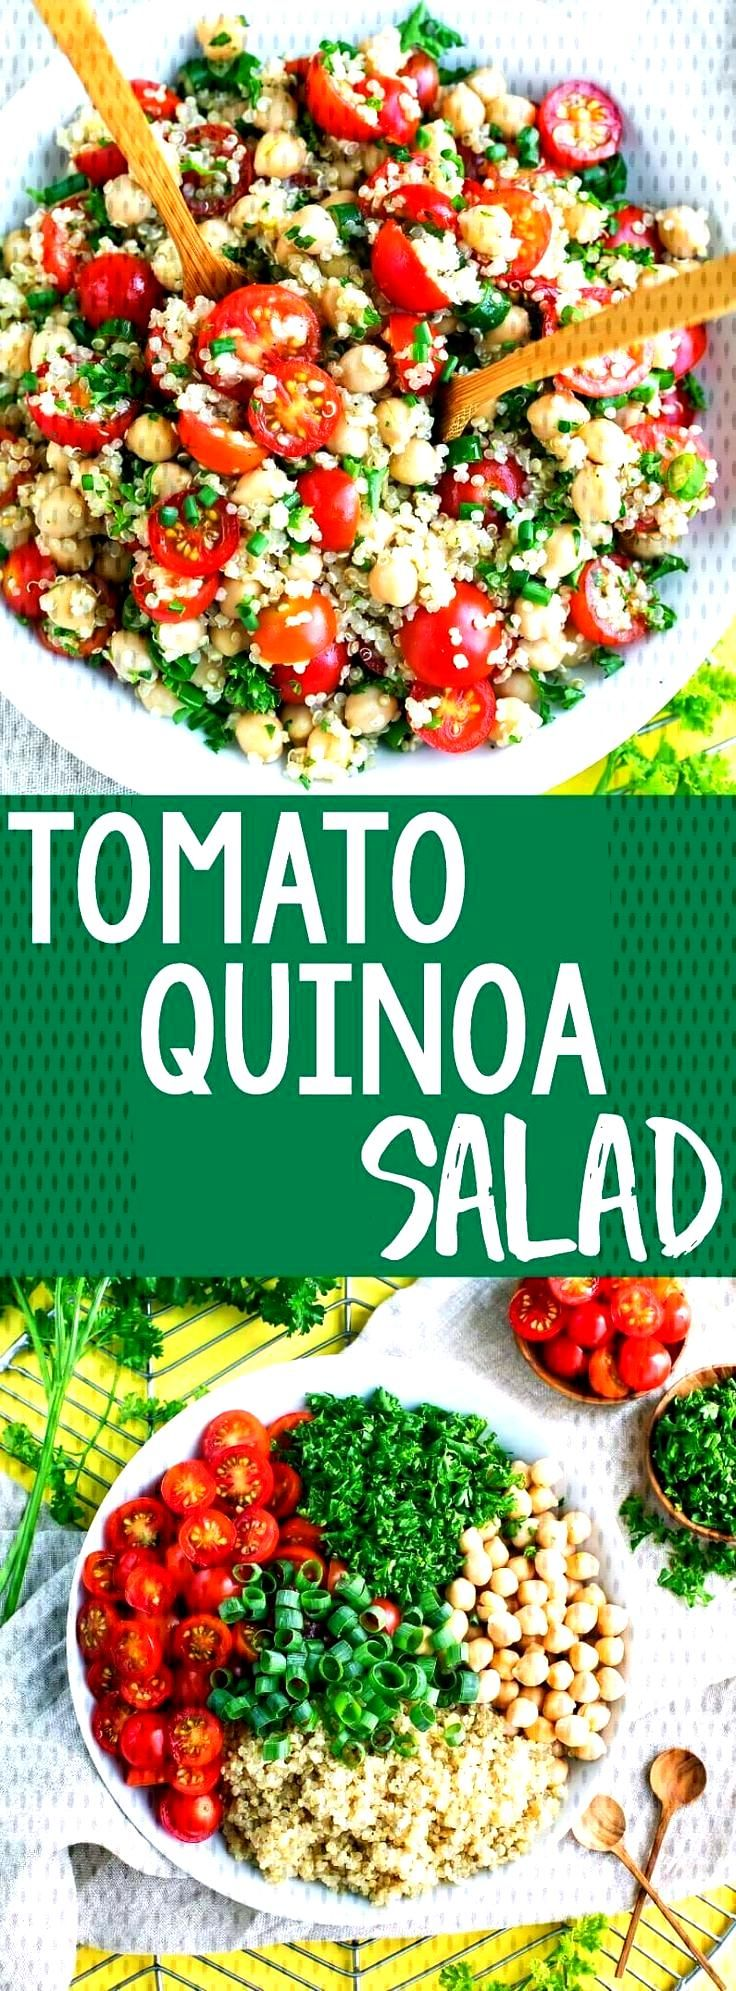 Tomato Quinoa Salad Recipe - Vegan and Gluten-Free - Peas and Crayons - It's time to add another